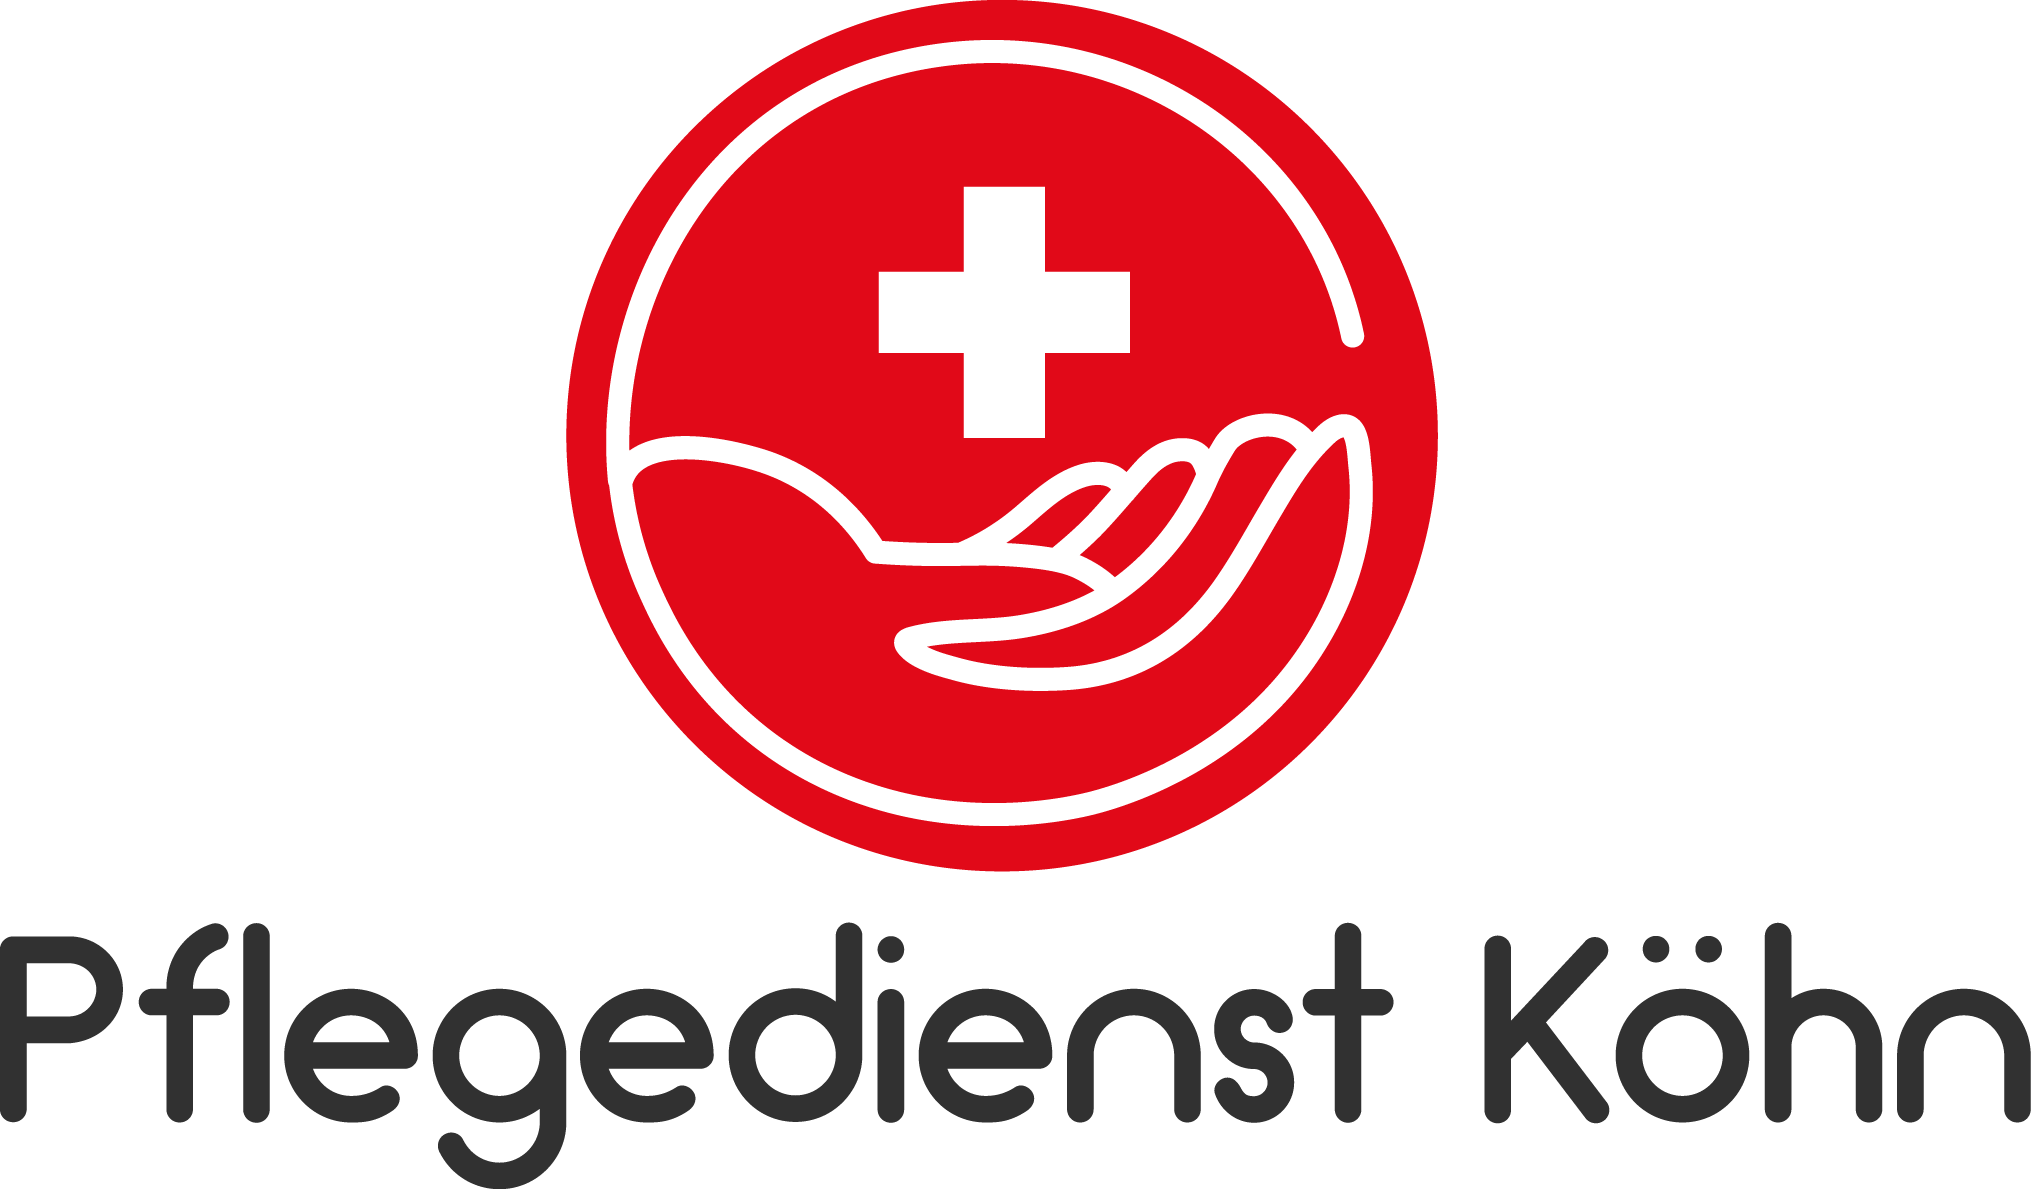 Pflegedienst Köhn